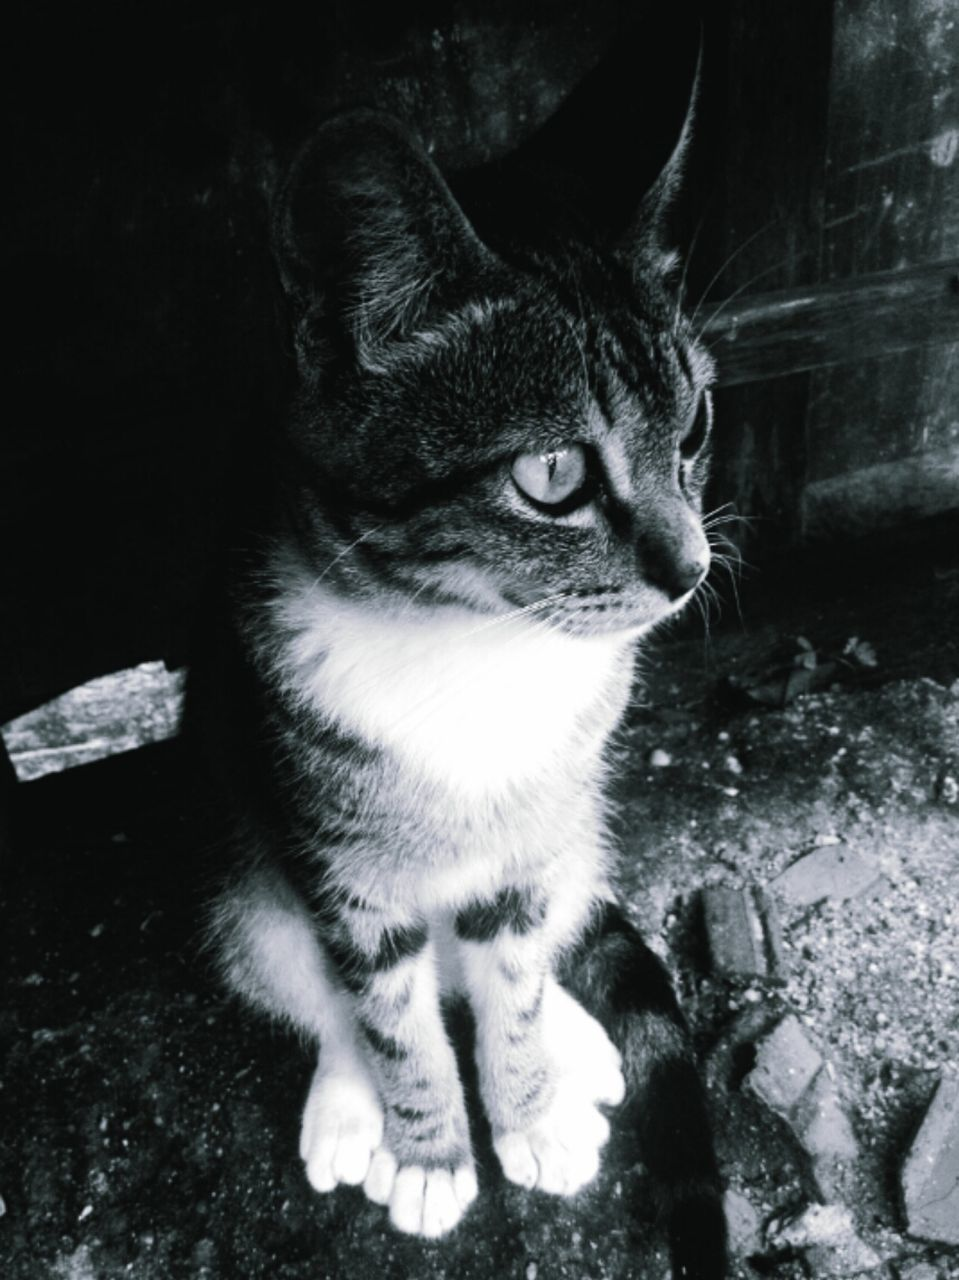 domestic cat, domestic animals, animal themes, one animal, pets, feline, mammal, cat, no people, whisker, sitting, looking at camera, portrait, day, indoors, close-up